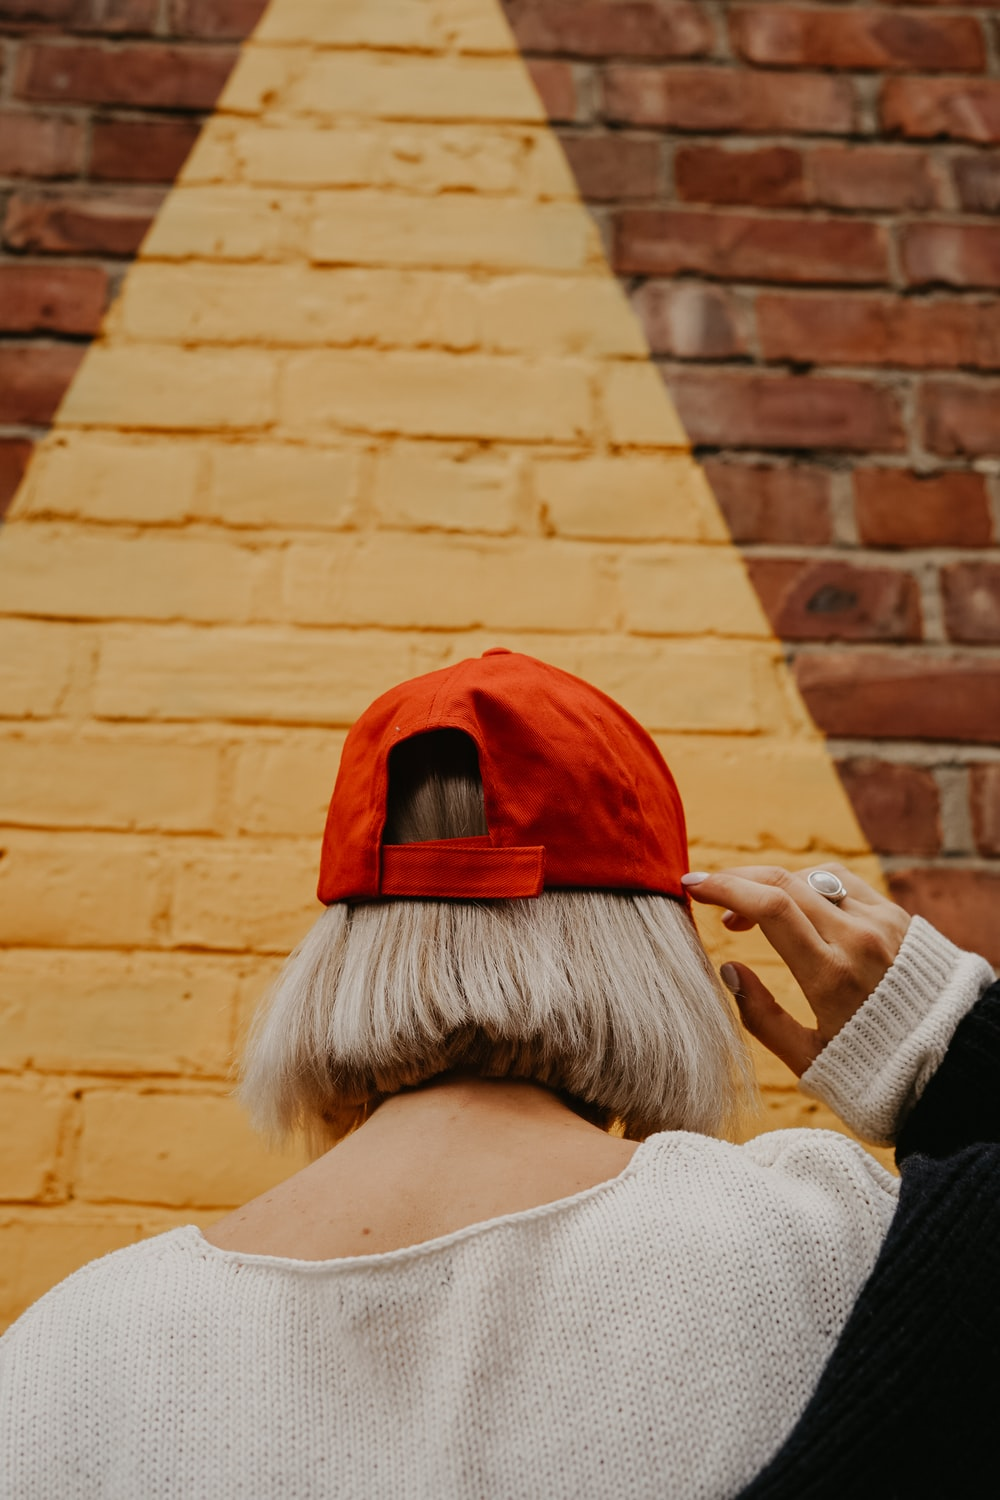 woman holding red cap